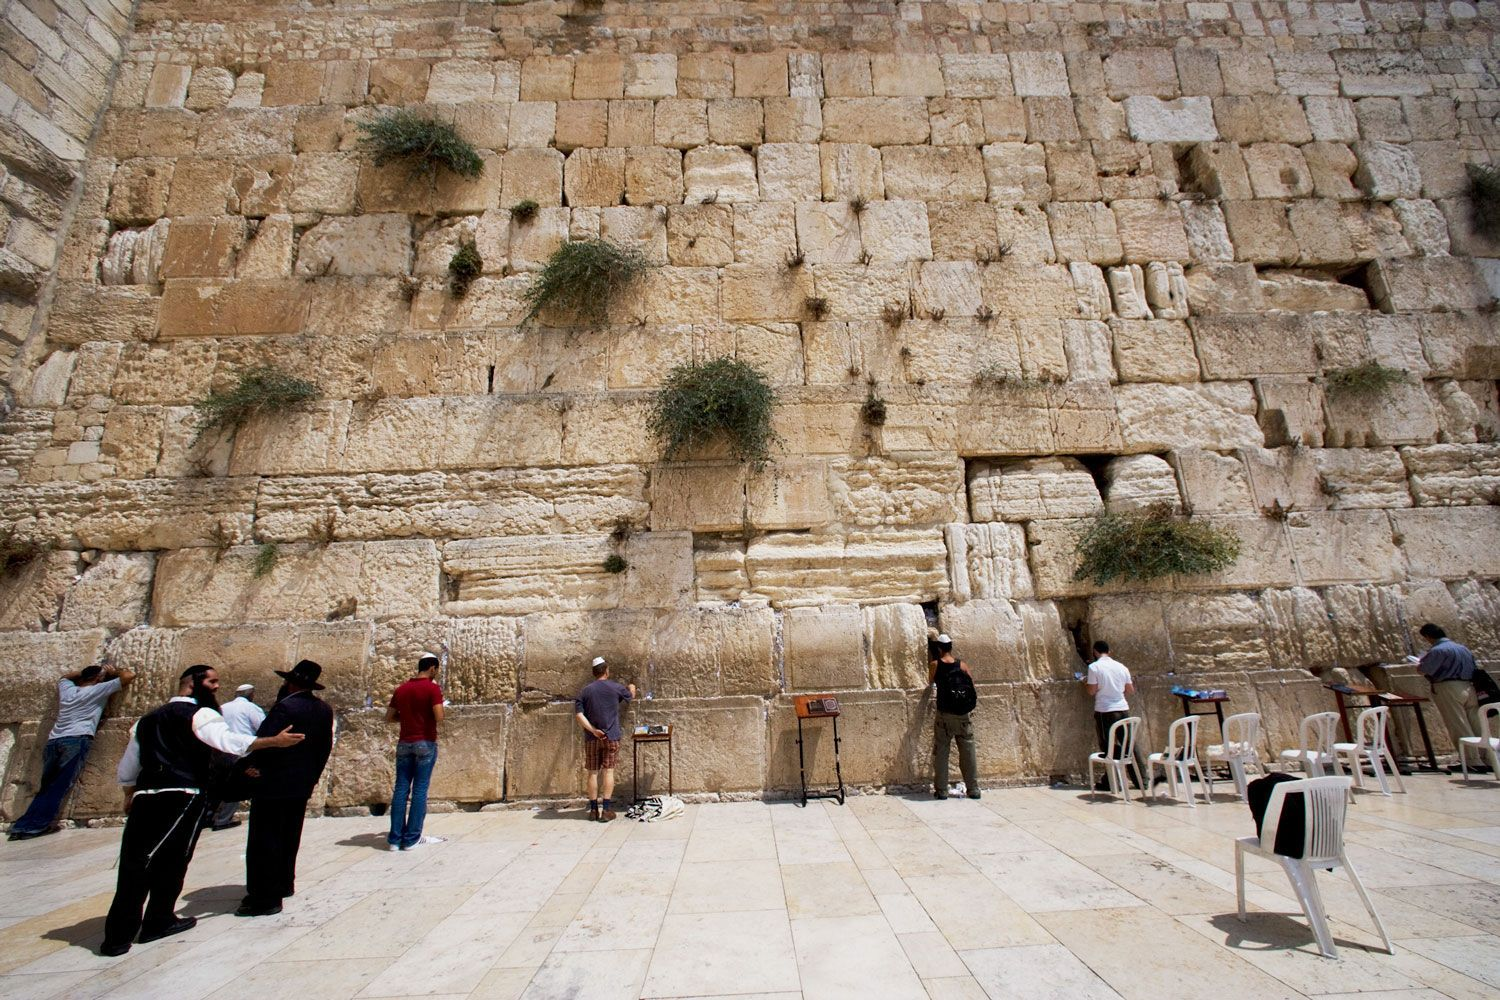 From the Wailing Wall